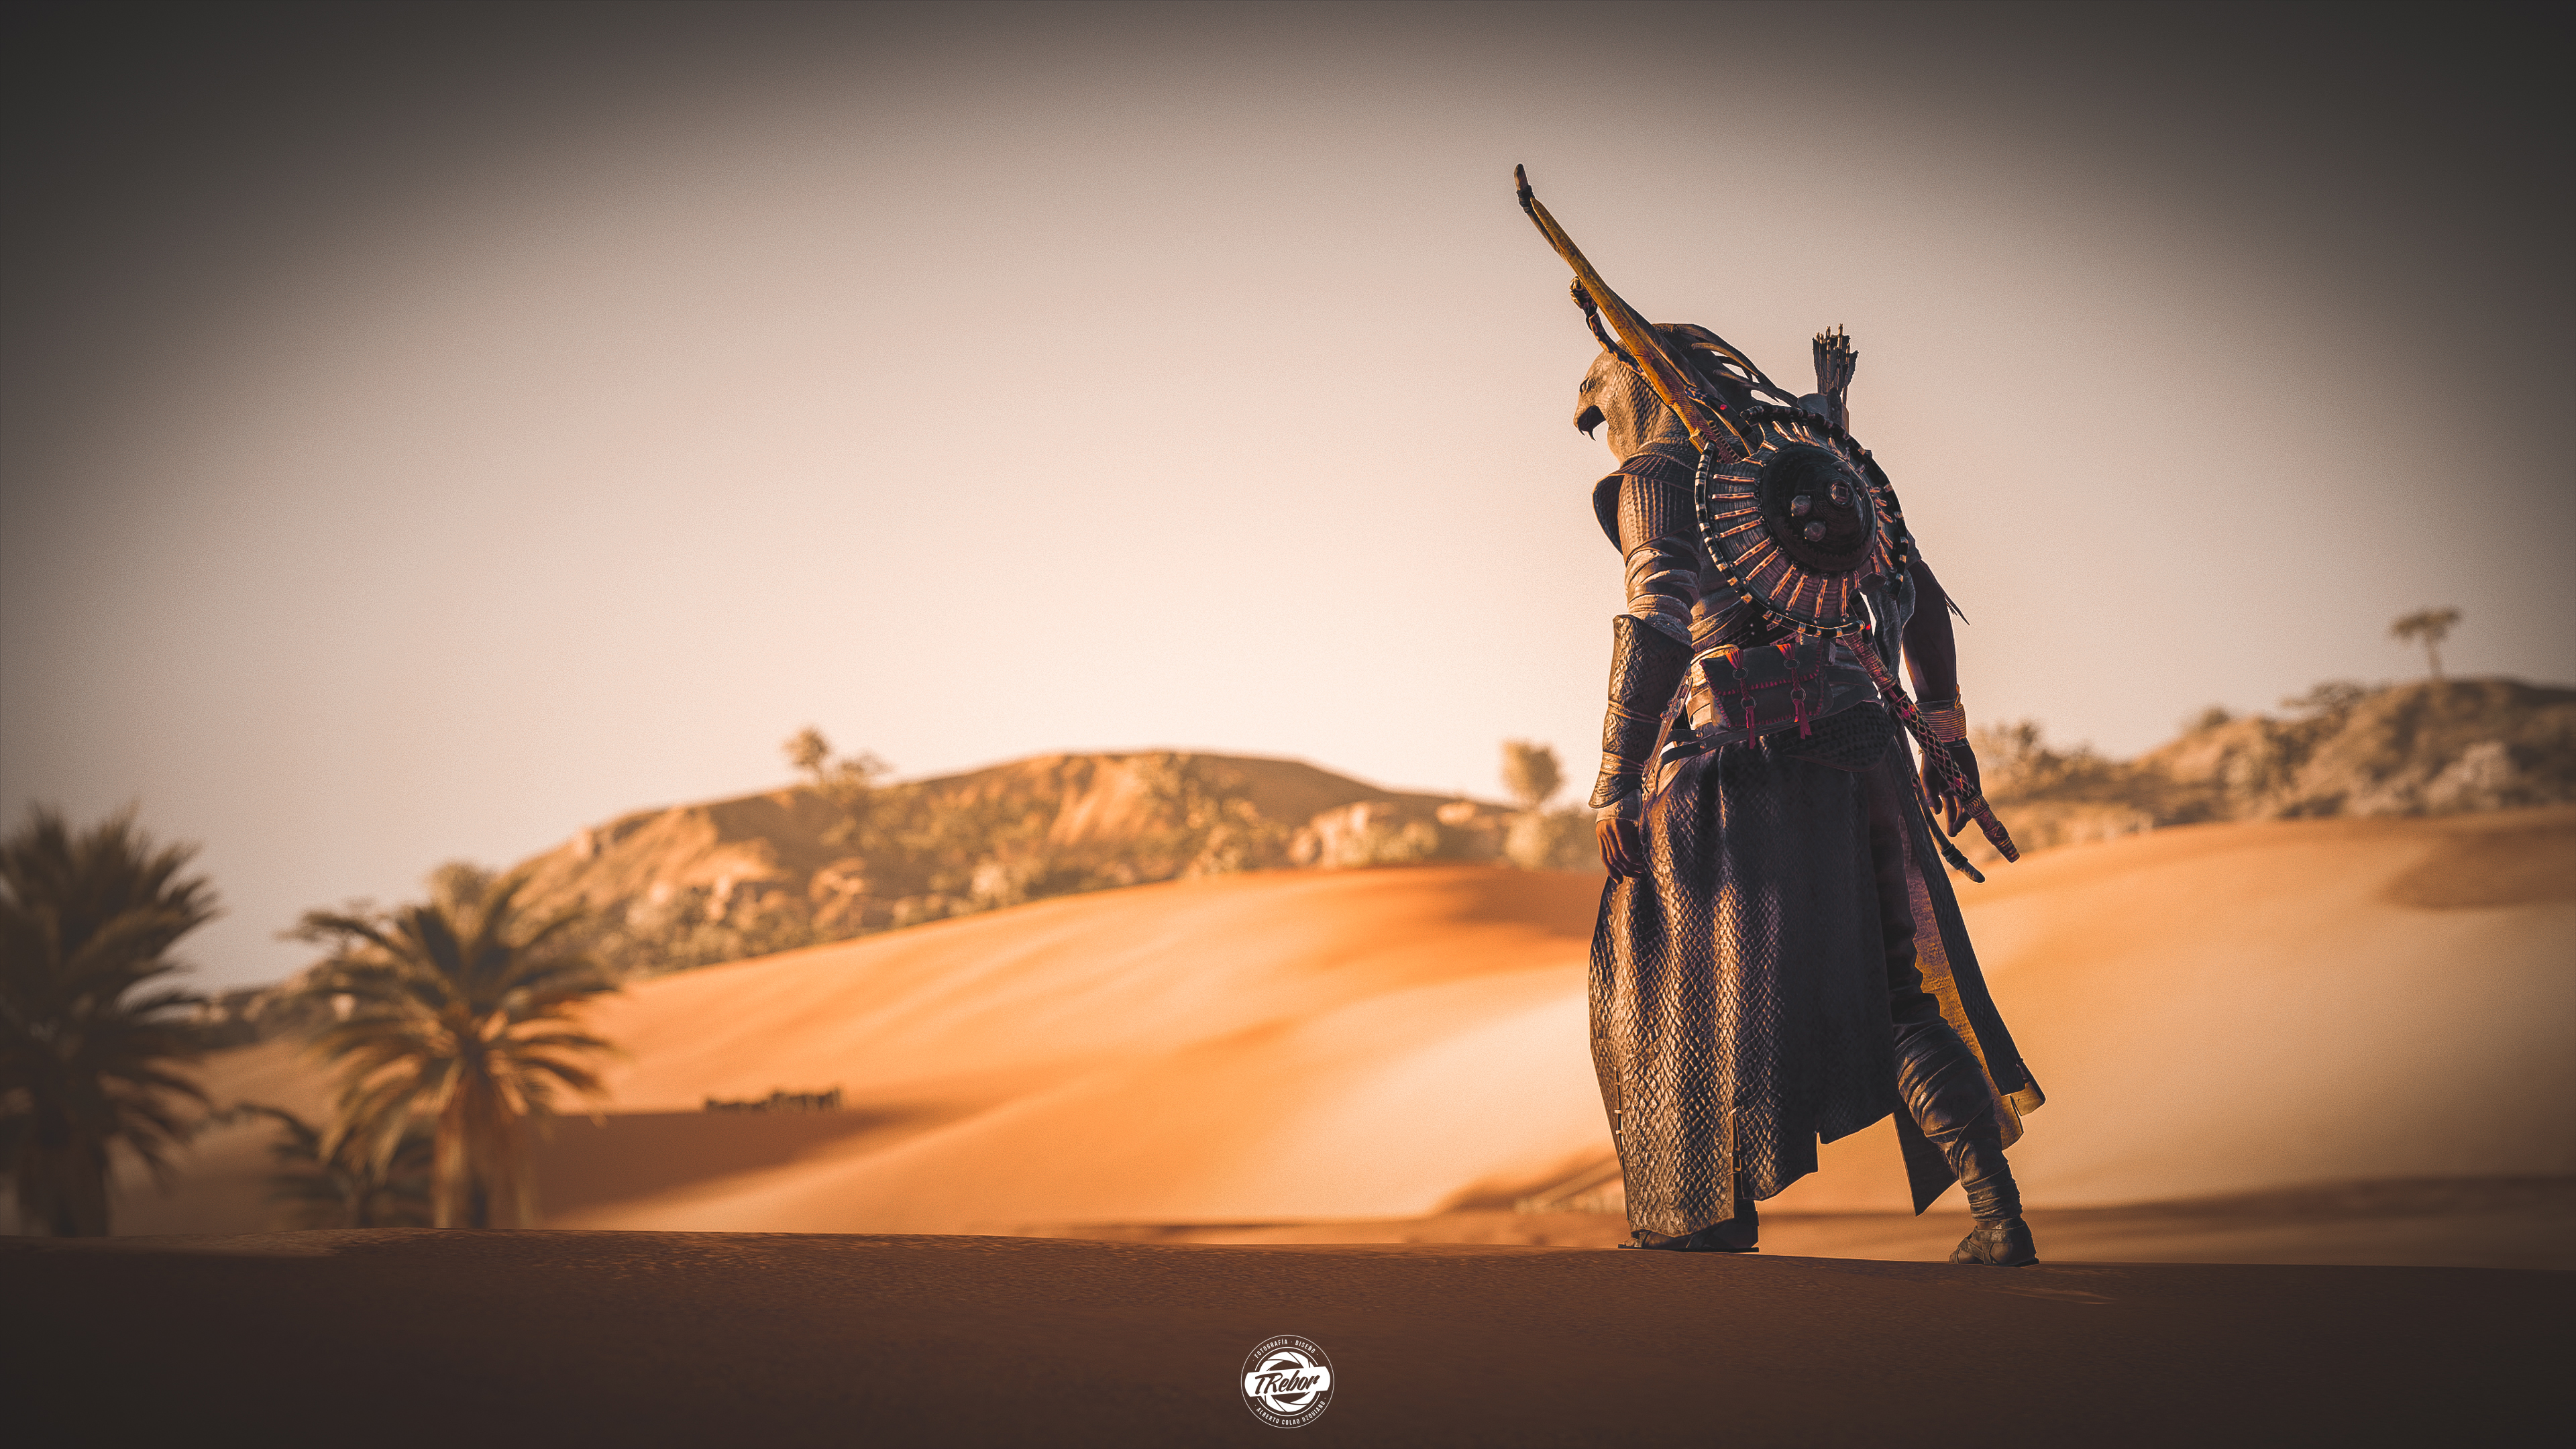 4kassassins Creed Origins Hd Games 4k Wallpapers Images